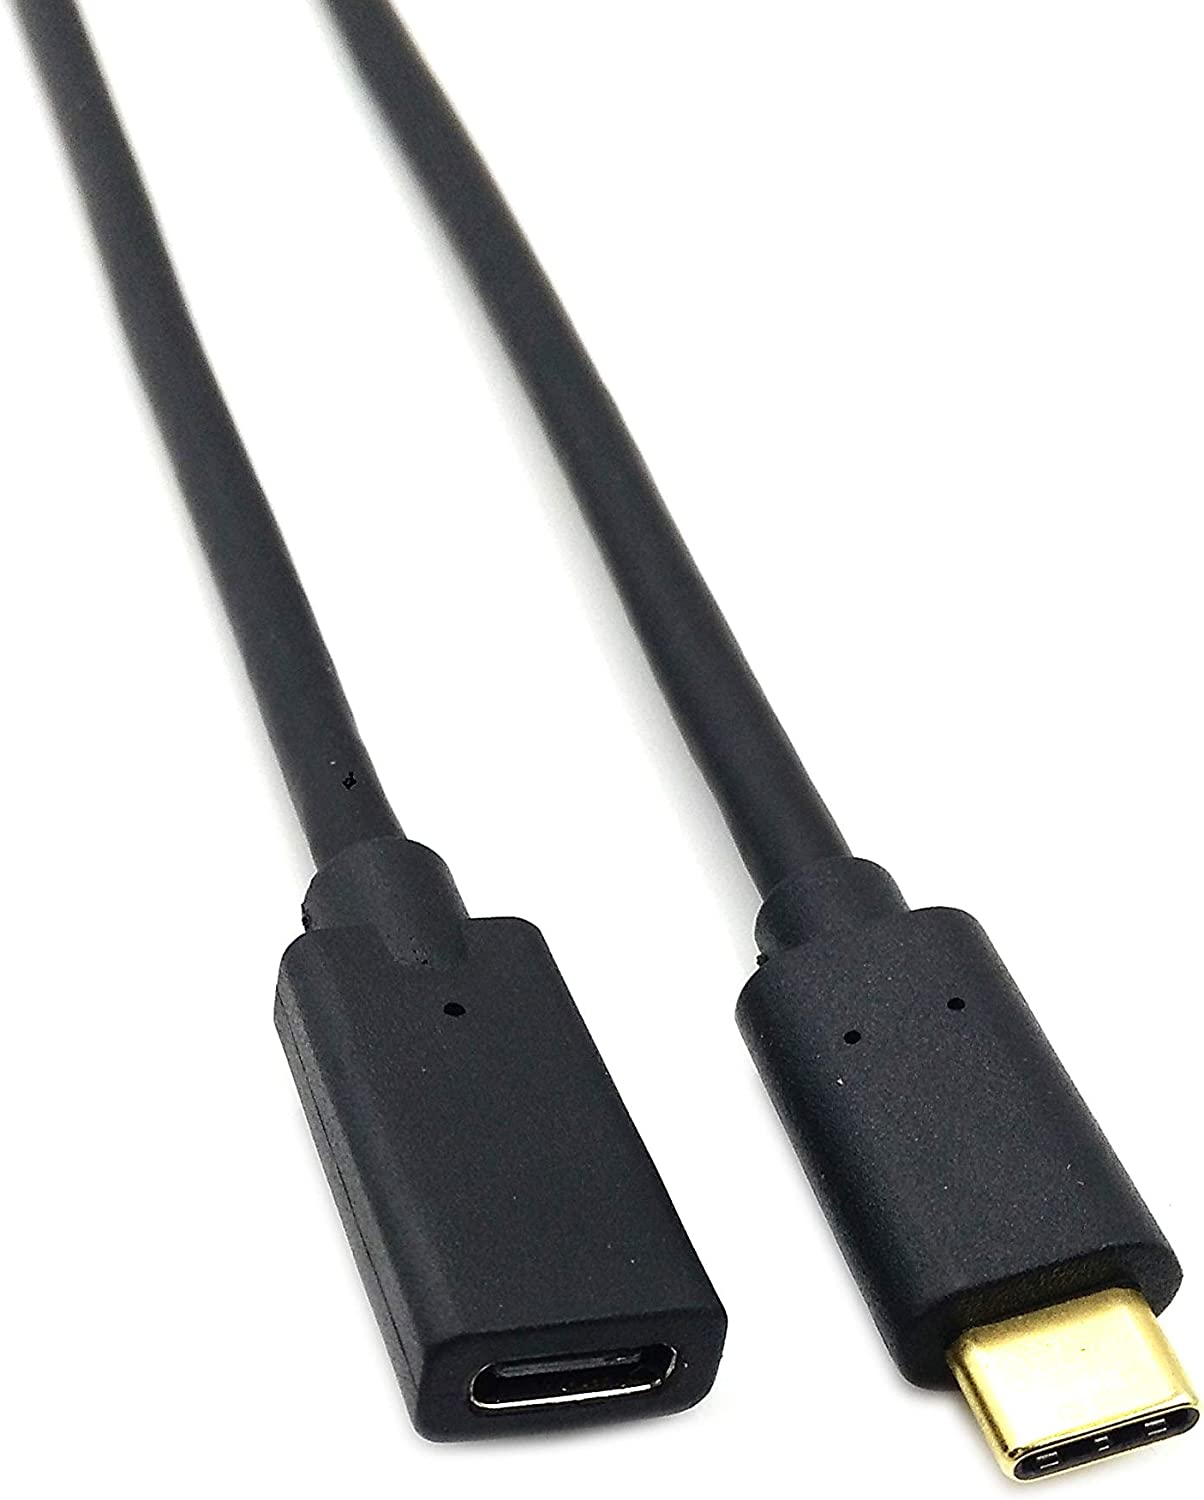 USB C Right M//FM Right /& Left Angled 90 Degree USB-C USB 3.1 Type-C Male to Female Extension Cable for Laptop /& Tablet /& Mobile Phone Poyiccot 90 Degree USB C Type C Male to Female Cable 1Feet//30cm